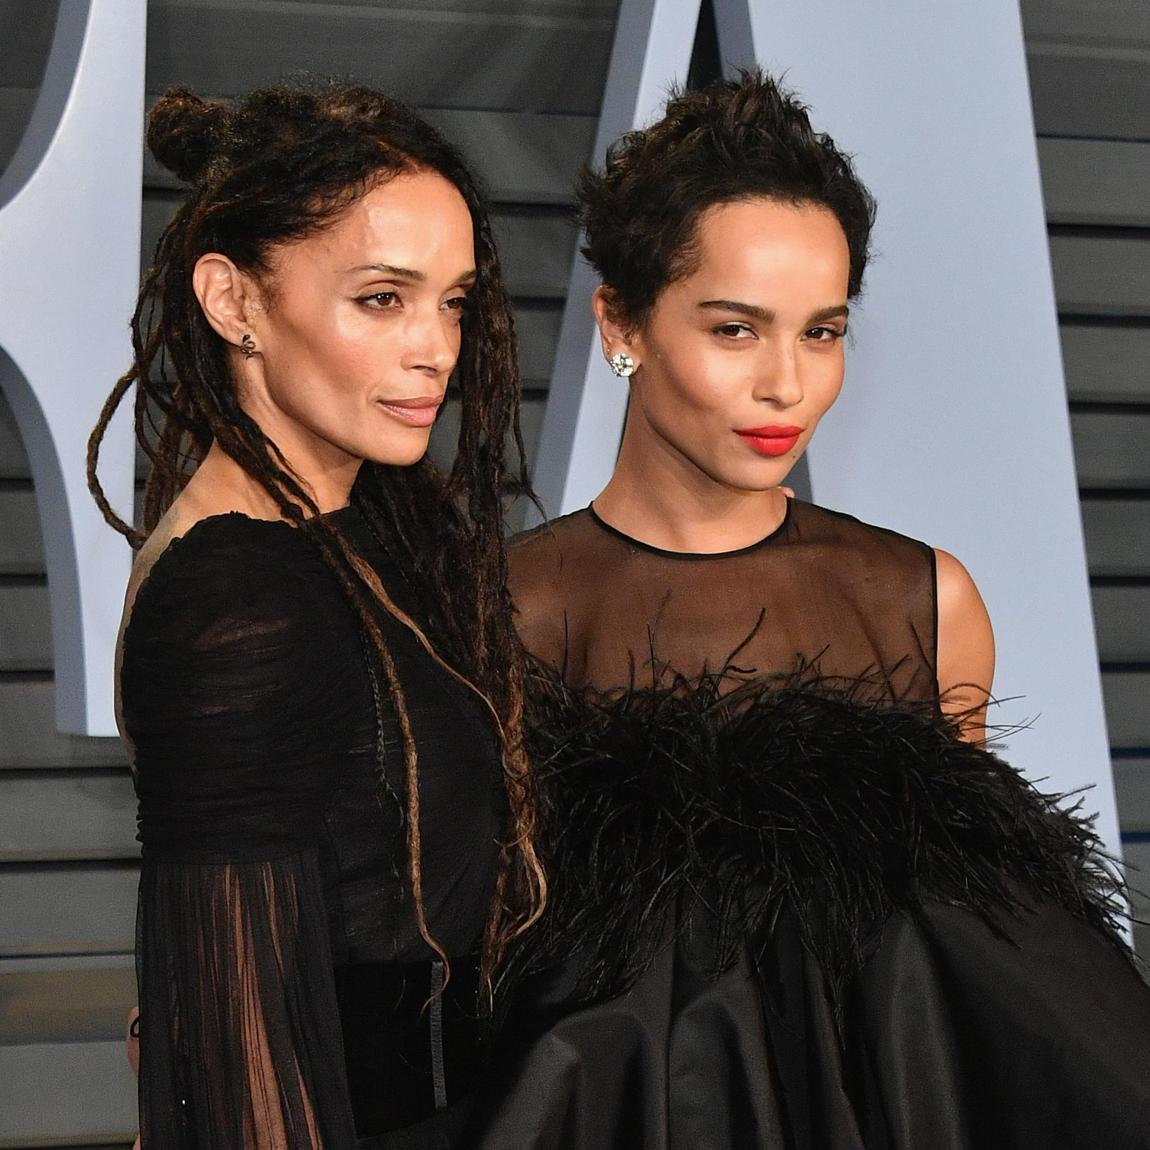 Zoe Kravitz and Lisa Bonet posing together